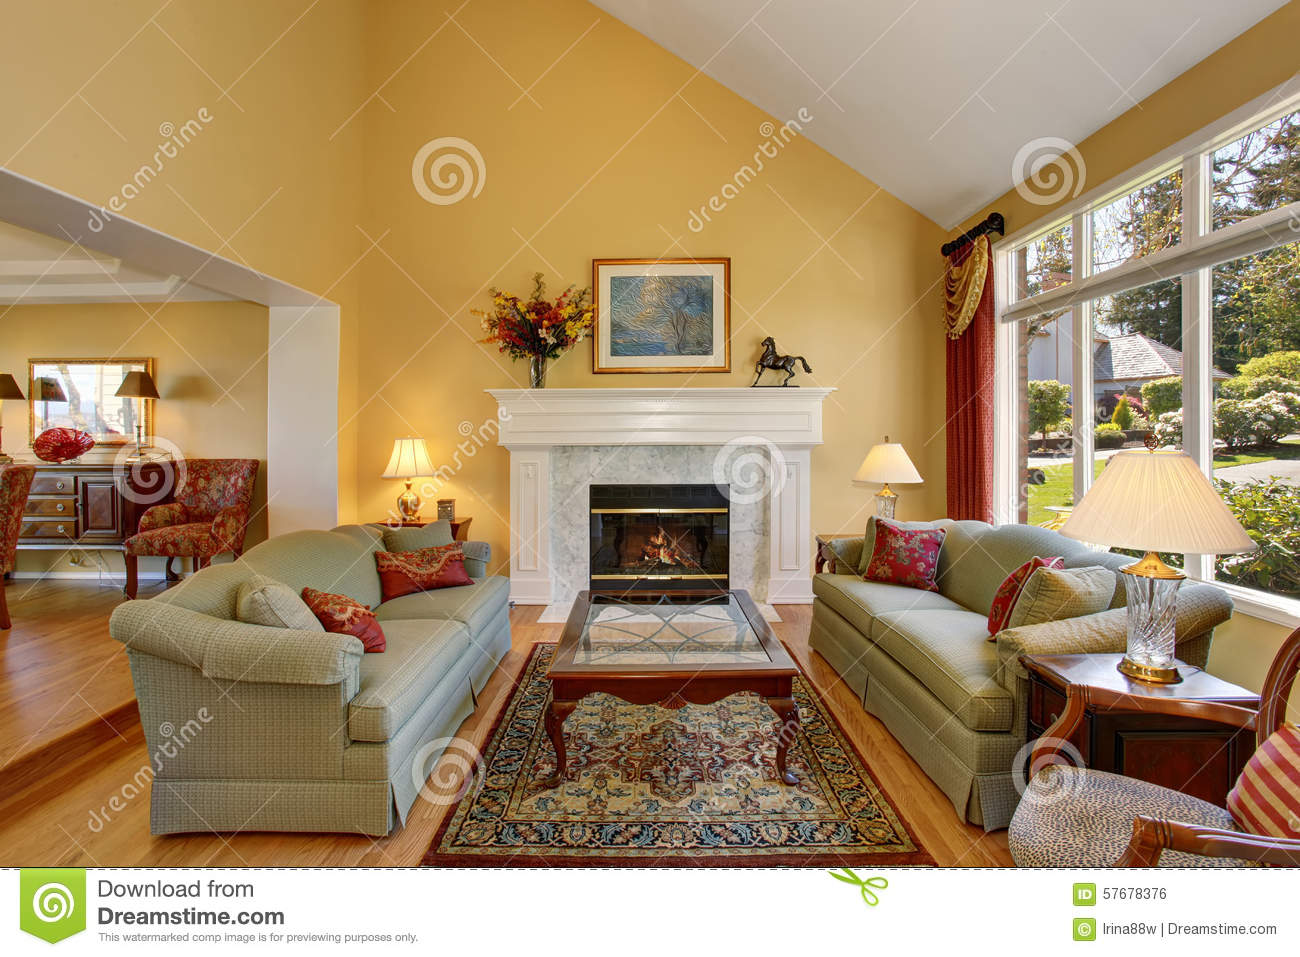 Brilliant Living Room With Green Sofas, And Yellow Walls. Stock ...